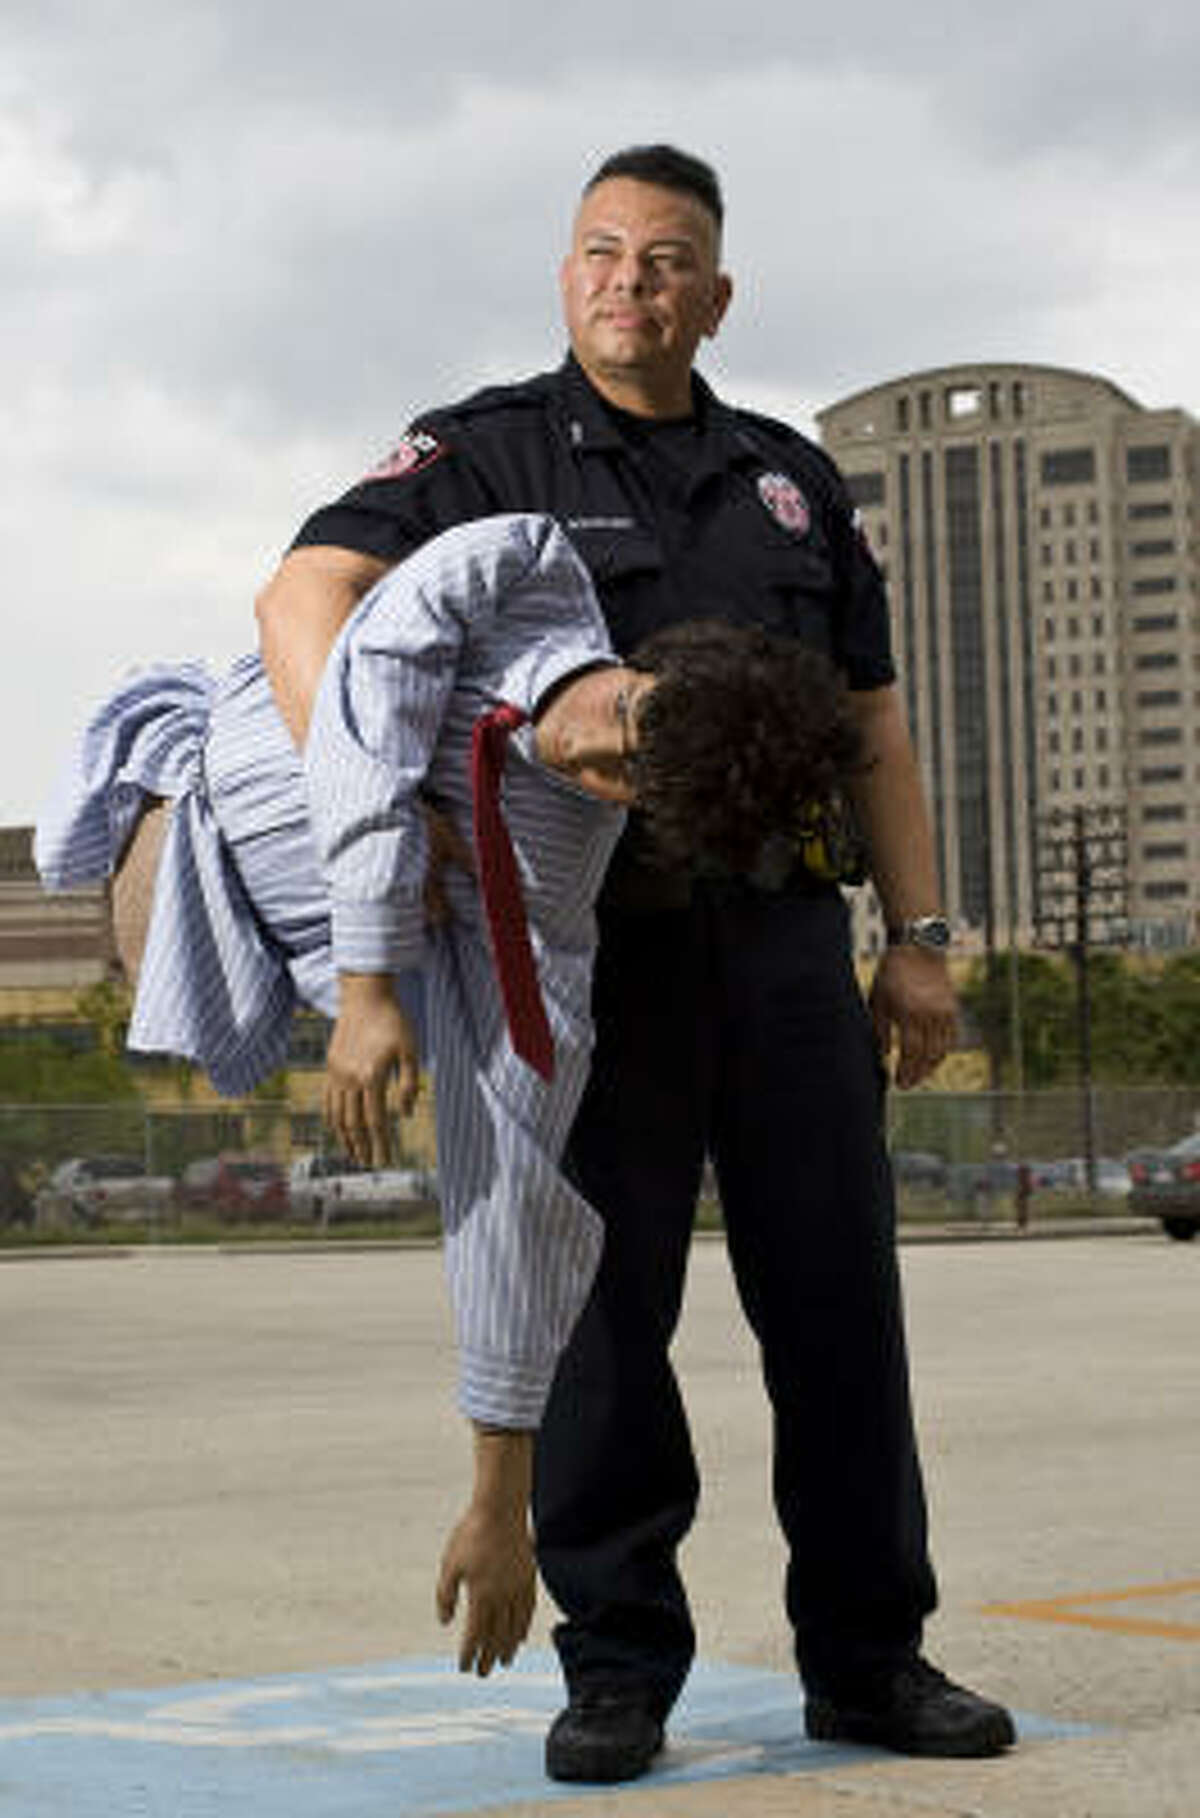 Metro police Officer Miguel Rodriguez, who confiscated the dummy after the accident on Thursday, said he was startled to find it and initially thought it was an injured person.